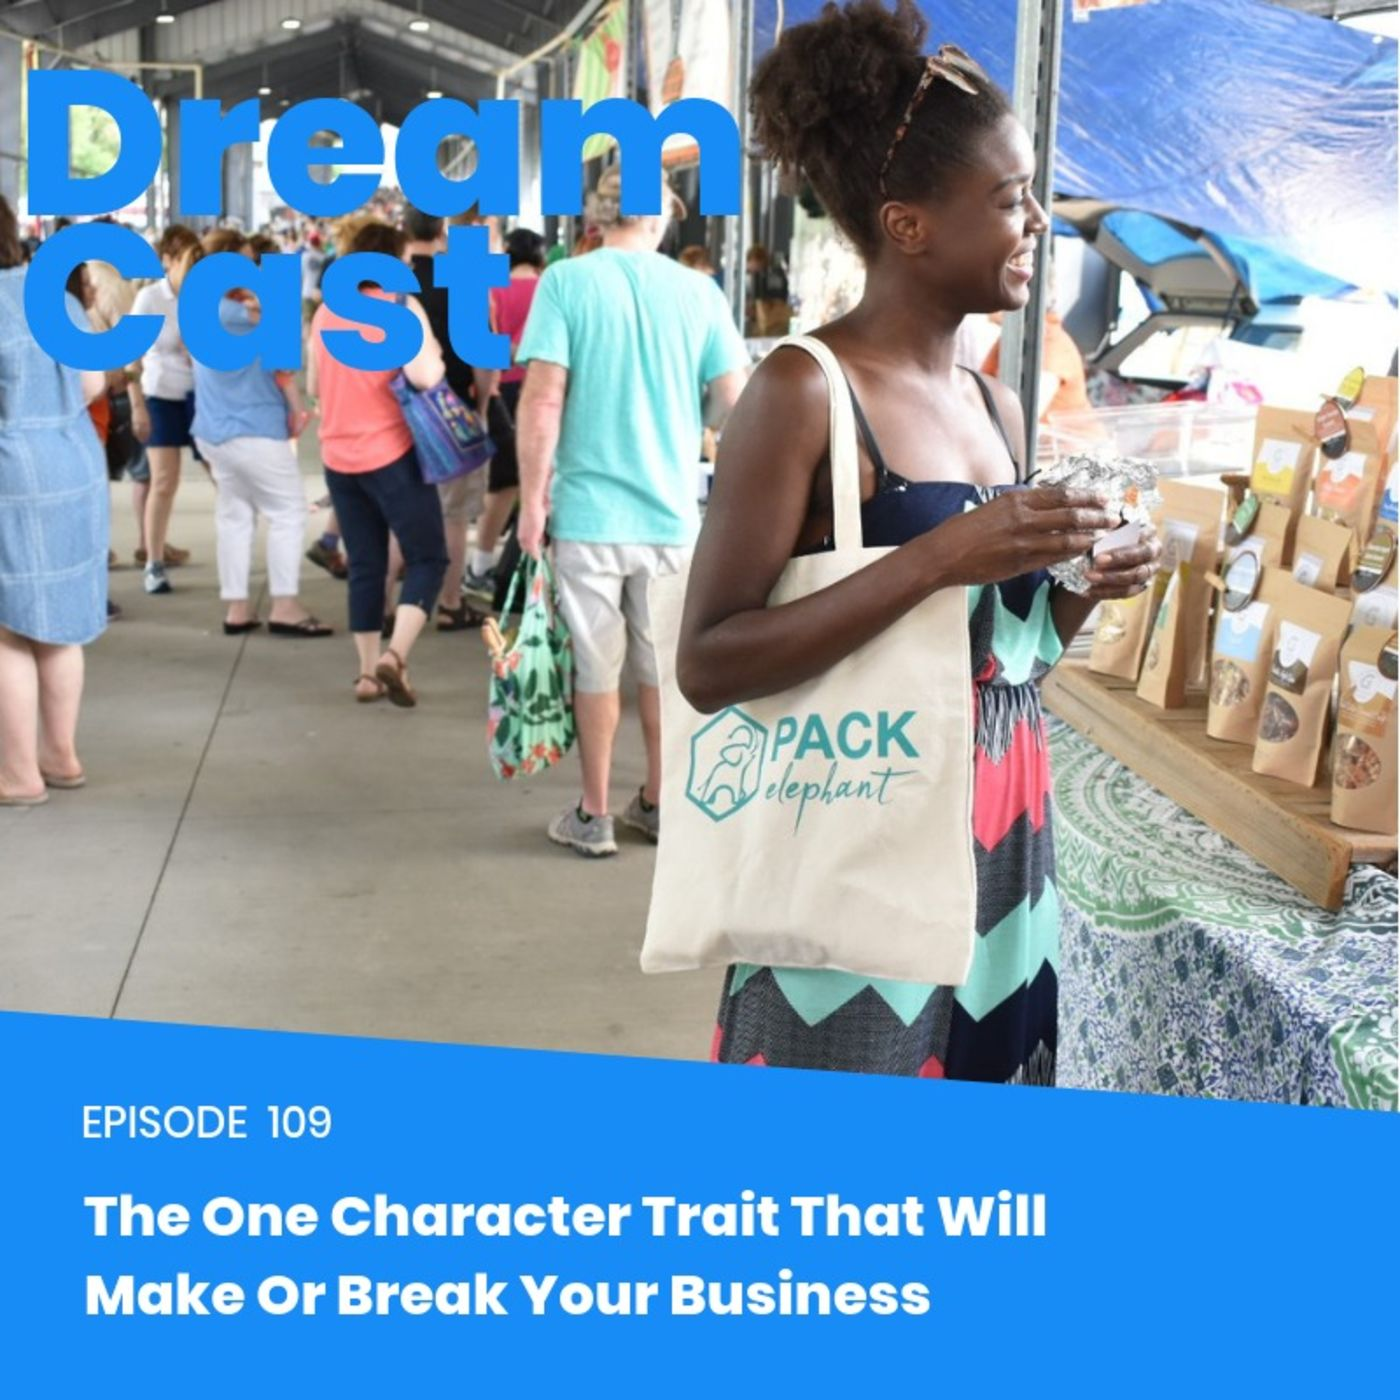 Episode 109 - The One Character Trait That Will Make or Break Your Business